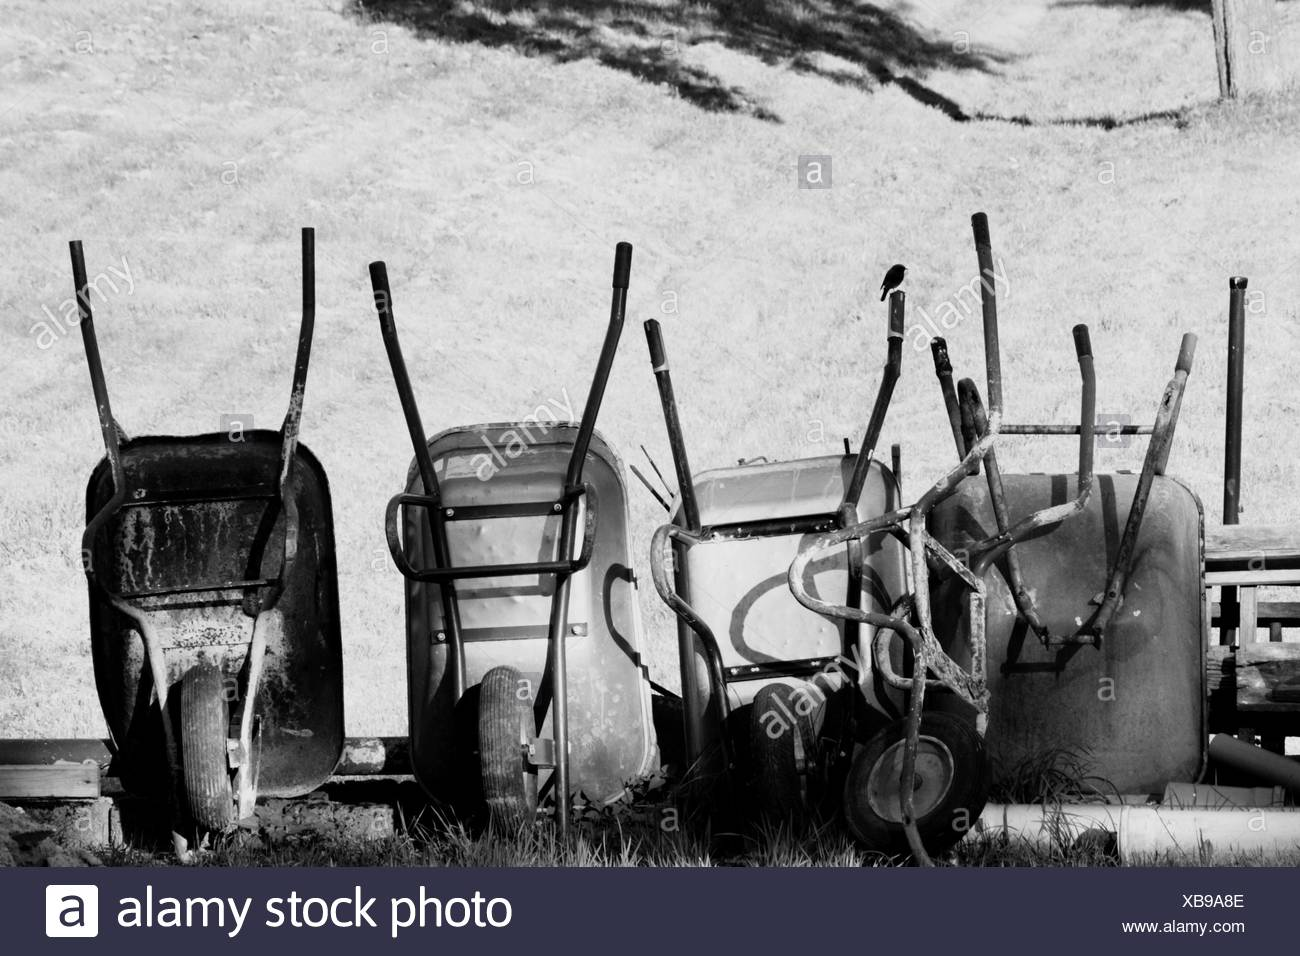 Wheelbarrows On Field - Stock Image